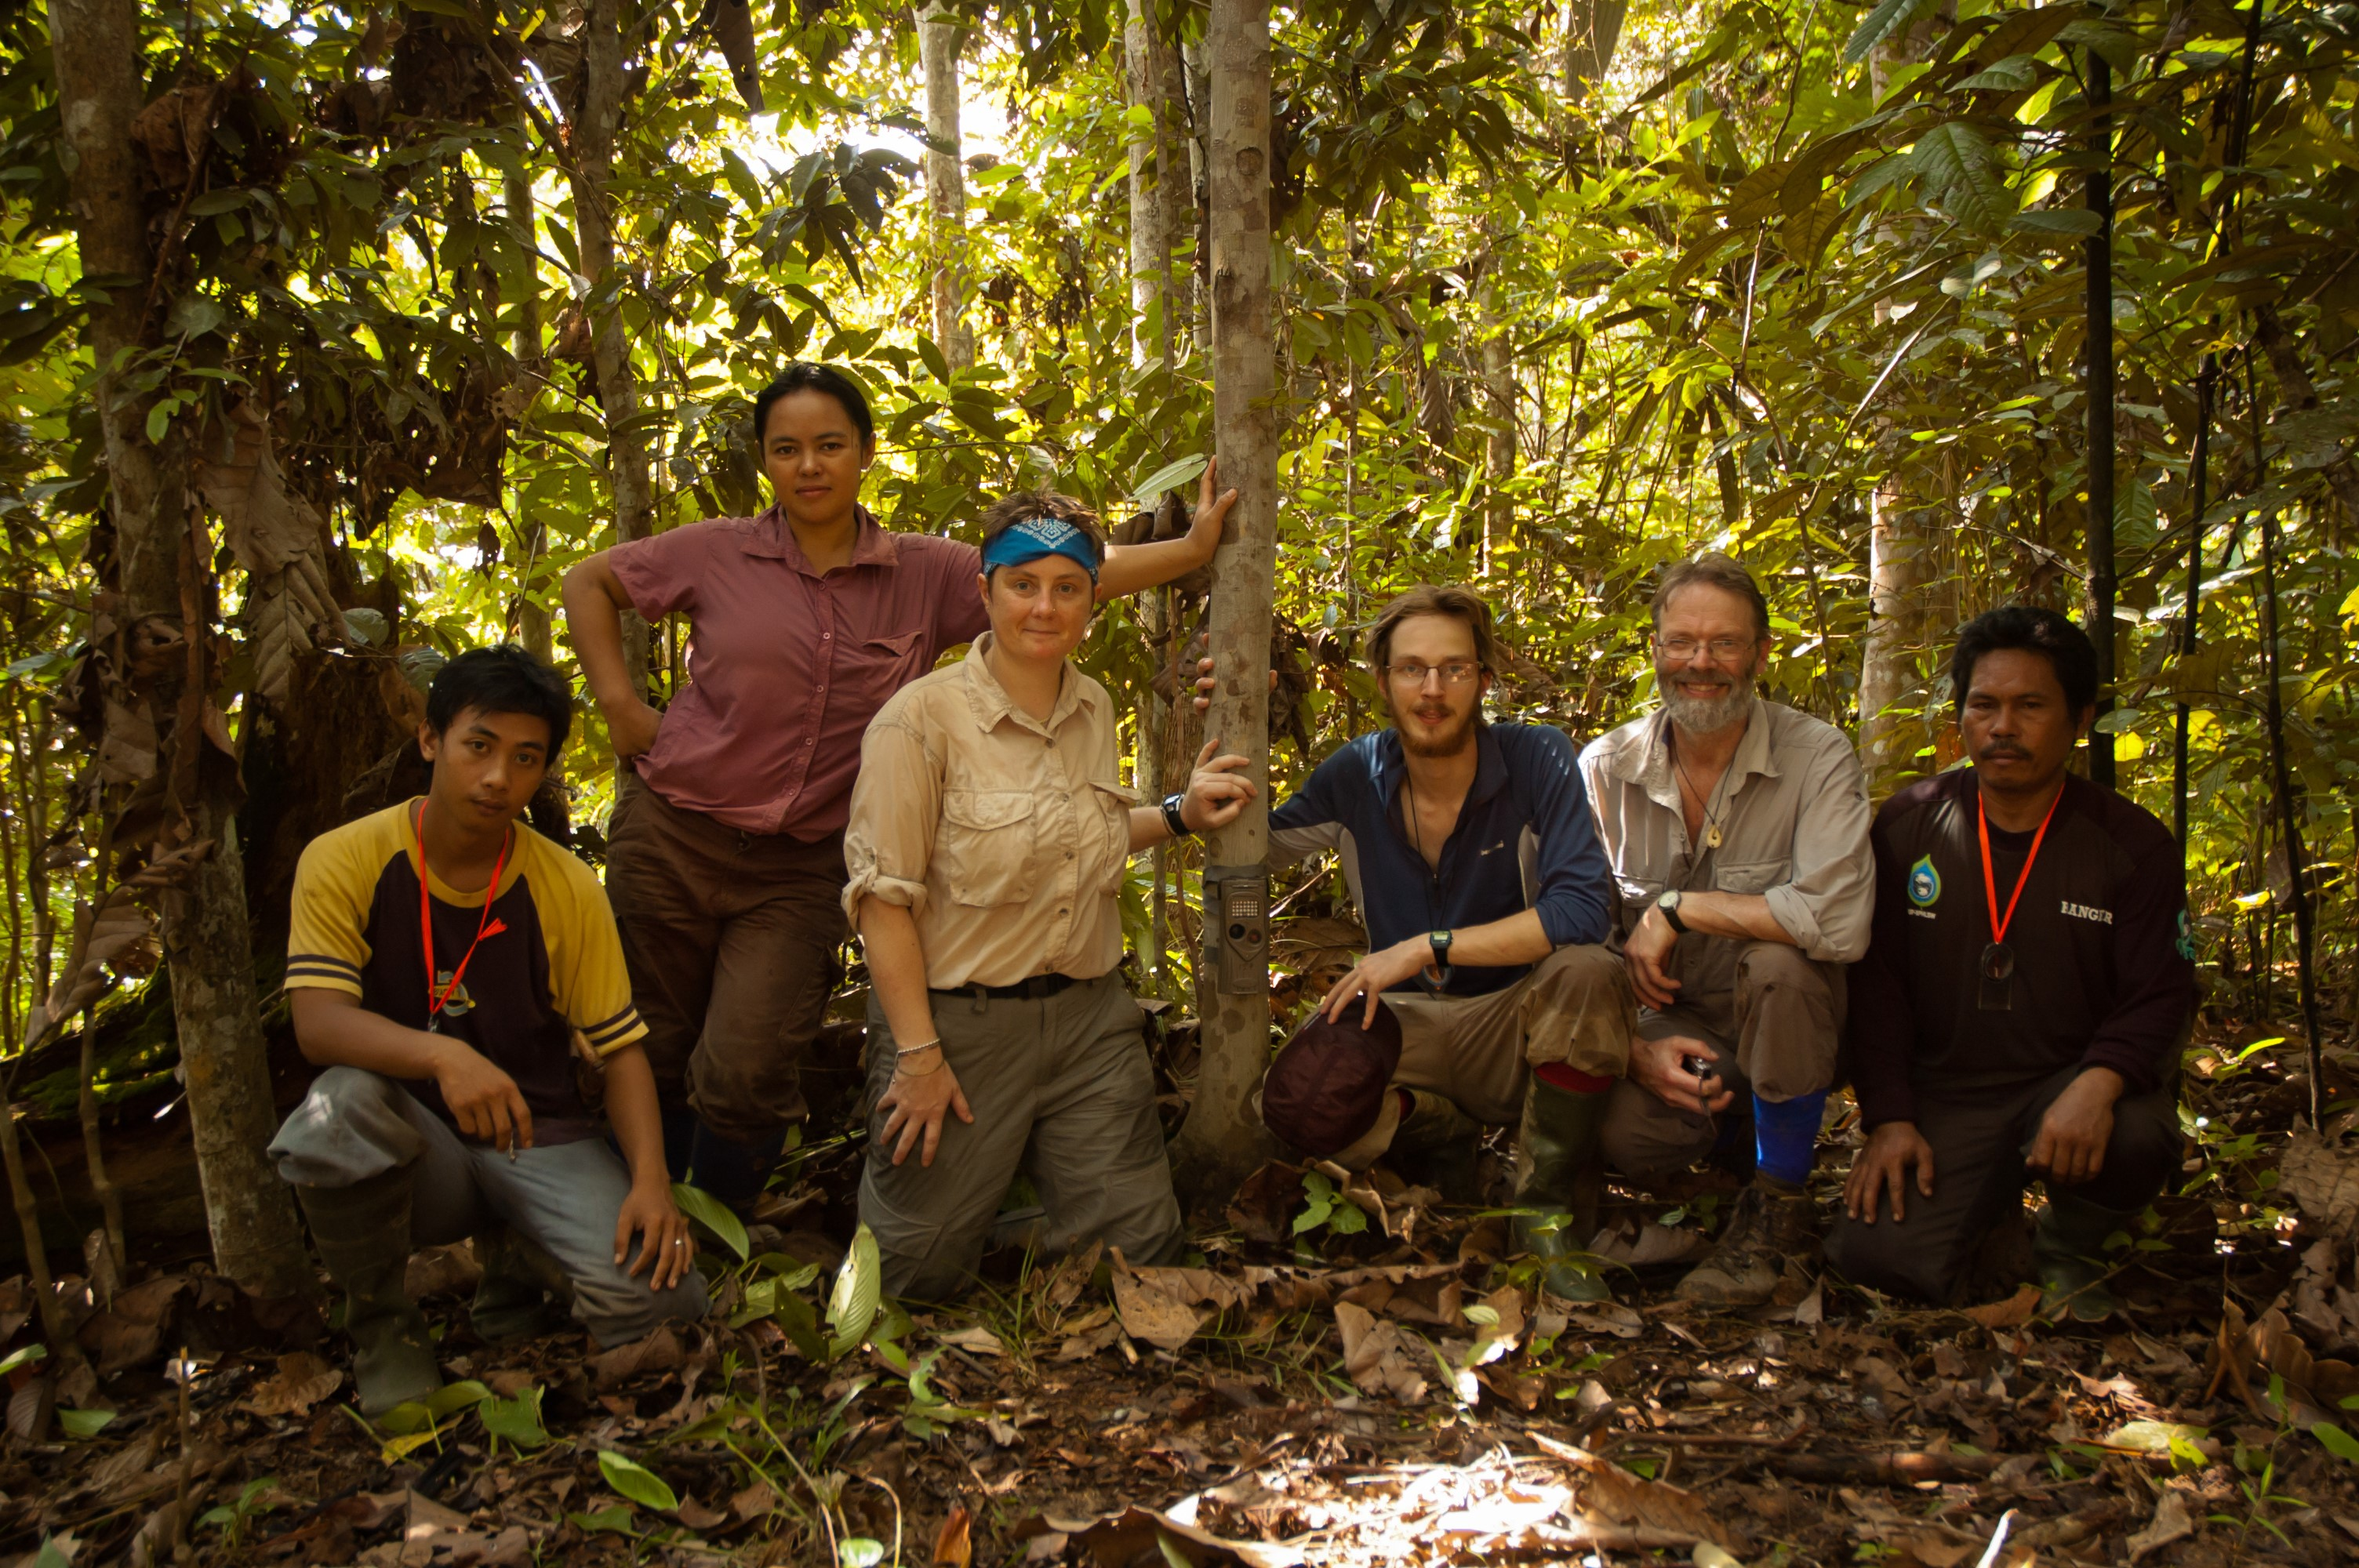 Ewan Macdonald (3rd from right) and David Macdonald (2nd from right) setting camera traps for clouded leopards with their team in Borneo.